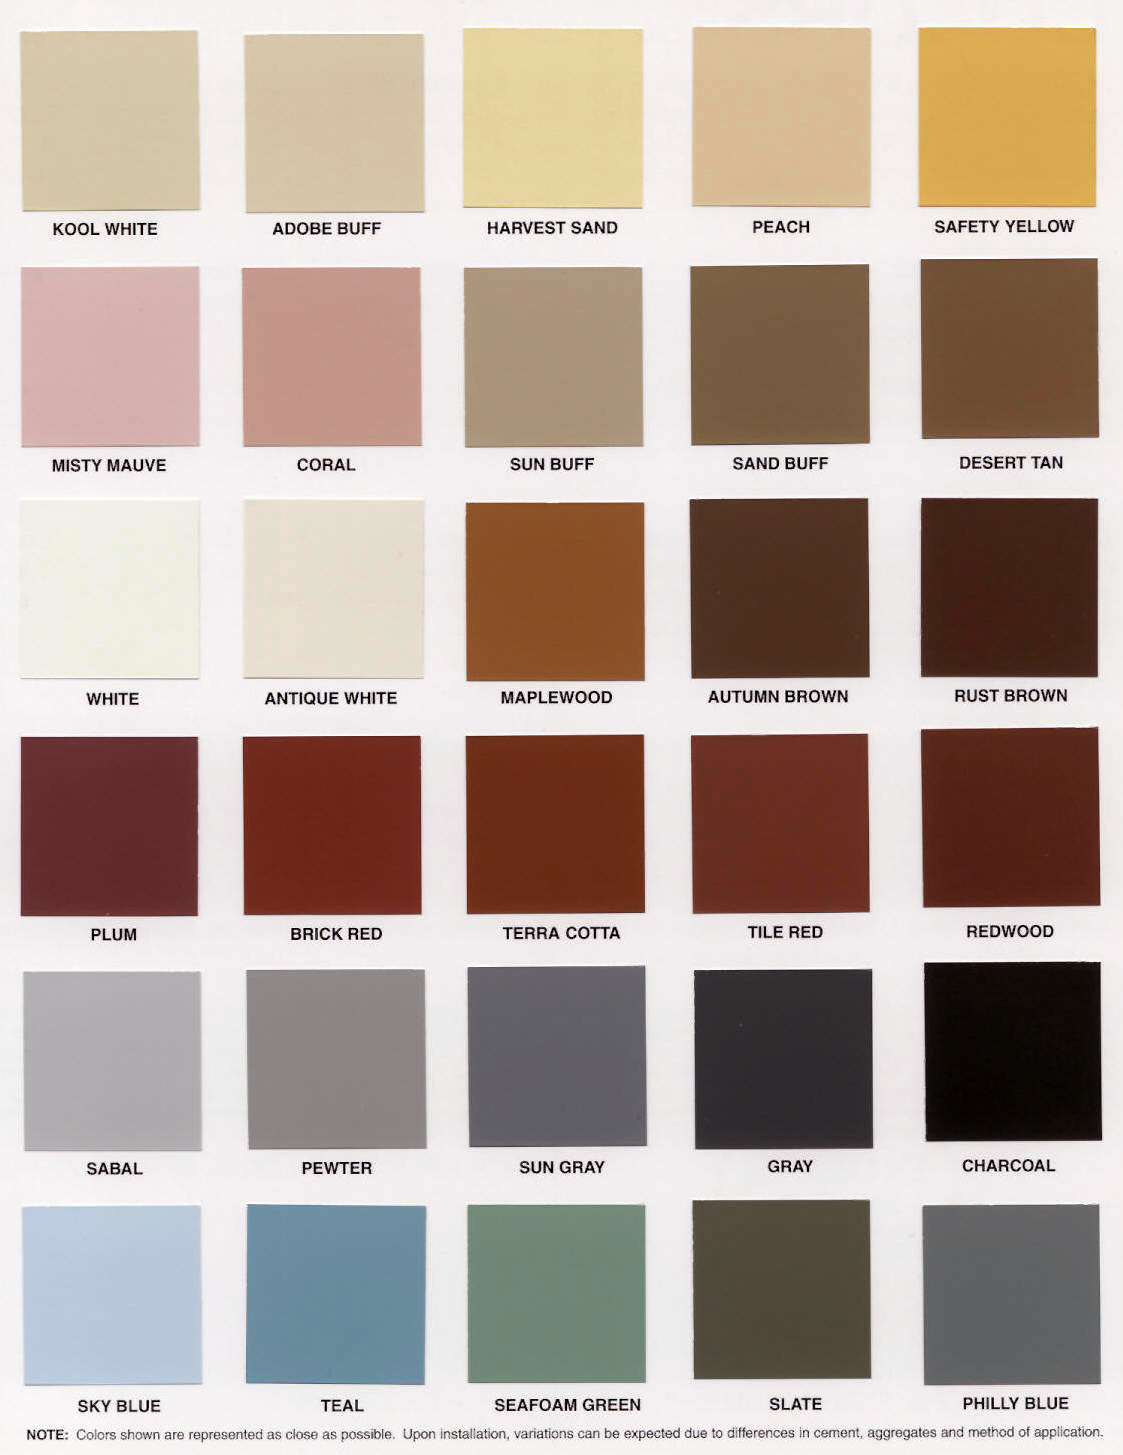 Lowes deck colors